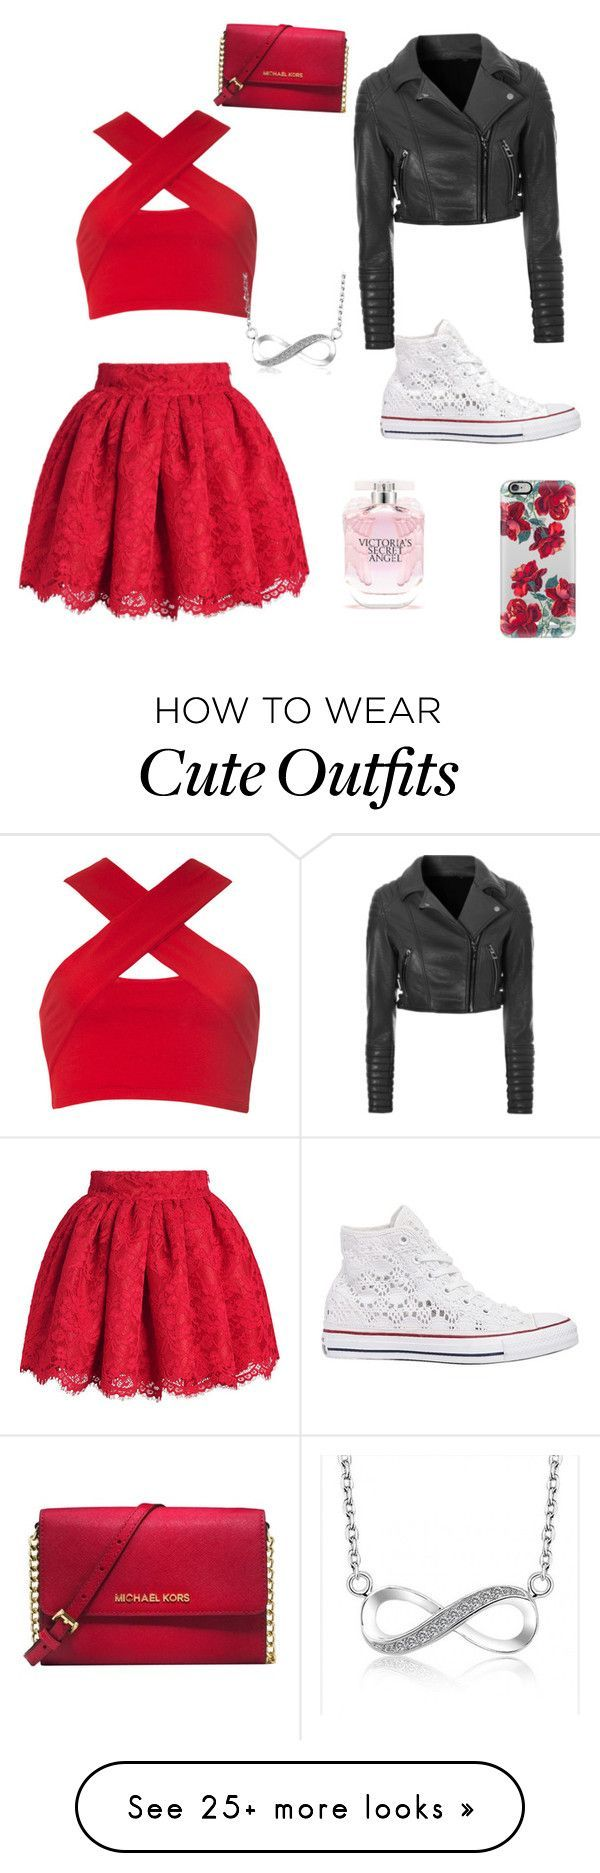 """Cute outfit!!!"" by breebee76 on Polyvore featuring Motel, Glamorous, Converse, Michael Kors, Victoria's Secret and Casetify"